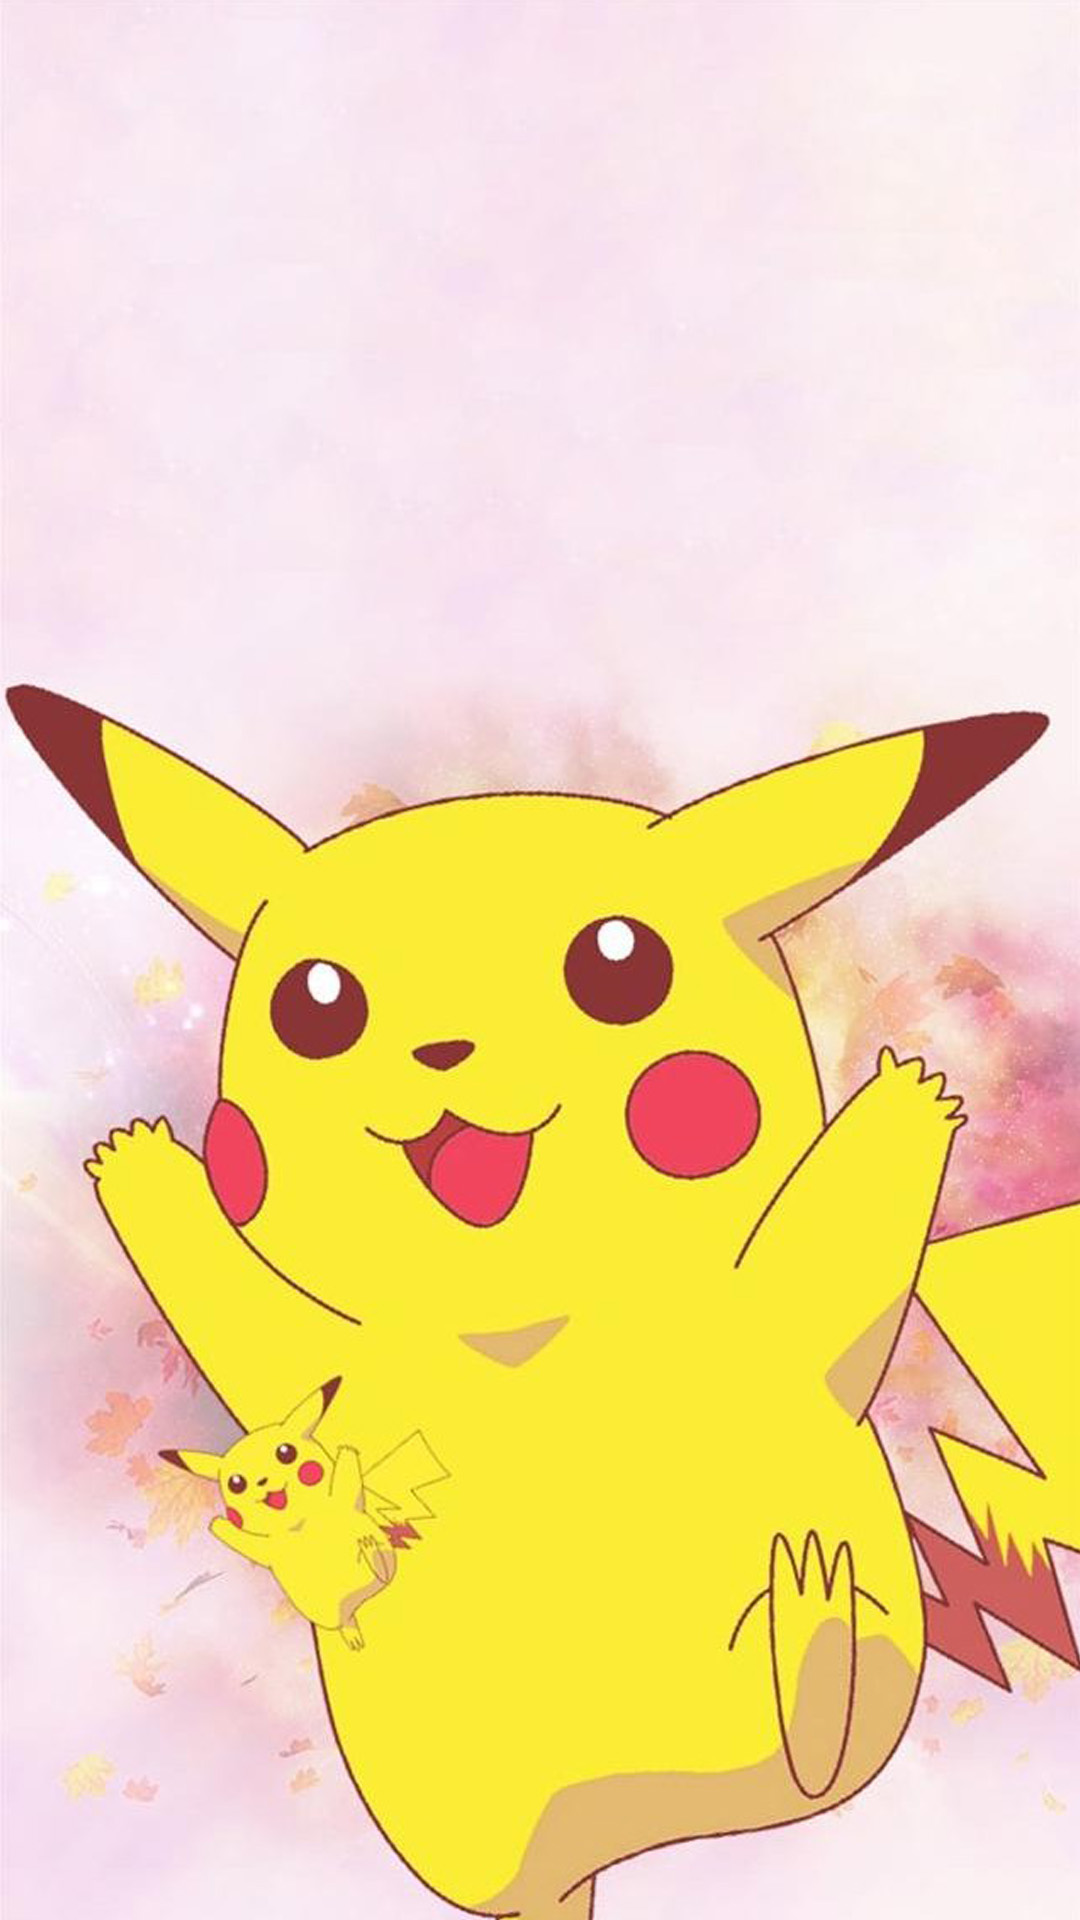 Pikachu Wallpapers For Iphone